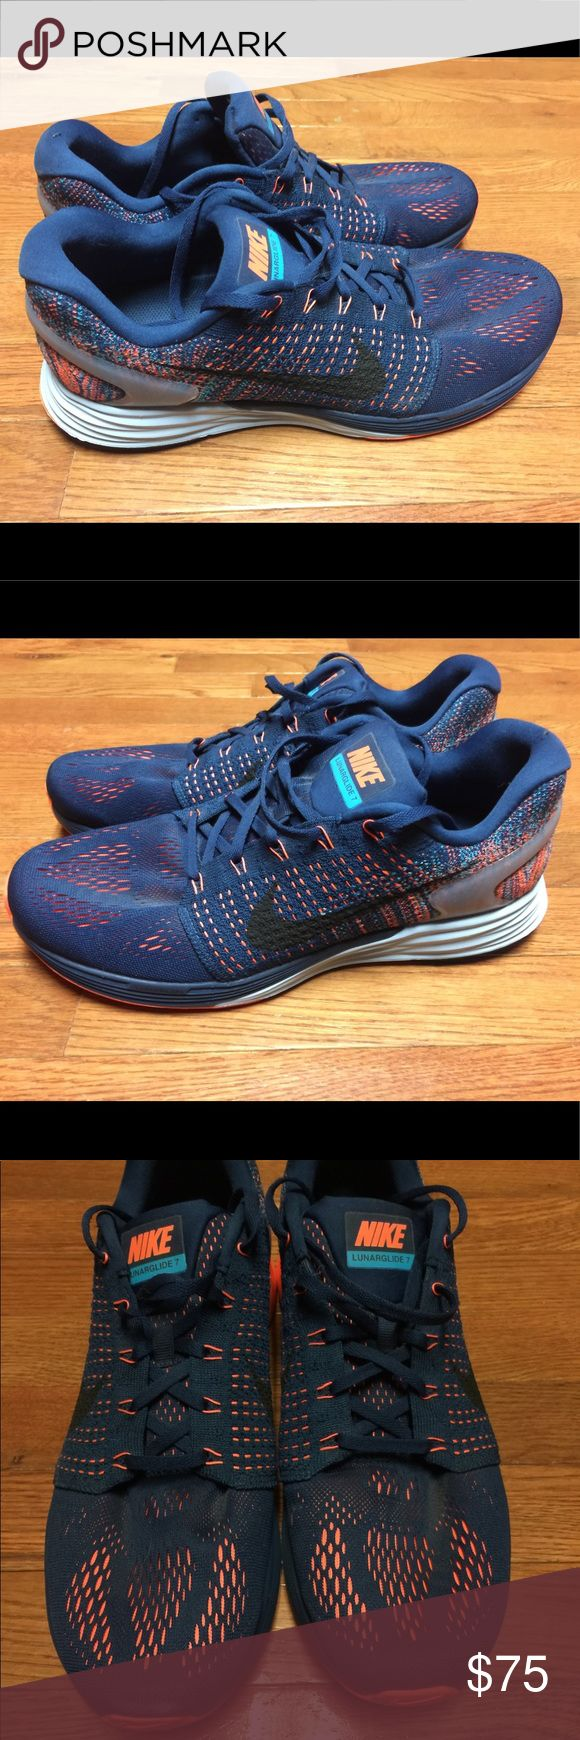 Nike Lunarglide 7 Running Shoes Like NEW! Worn ONCE! BRAVE BLUE/BLACK/BLUE LAGOON   Item# 747355 404 / MSRP: $159.99  World's #17 bestNikerunning shoe. Provides a comfortable, breathable experience without irritation, so you can focus on your running goals and not on your shoes.  FEATURES: UPPER: Flyknit, engineered mesh and Flywire cables / MIDSOLE: Lunarlon cushioning, TPU heel counter / OUTSOLE: Rubber with traction pattern Nike Shoes Athletic Shoes